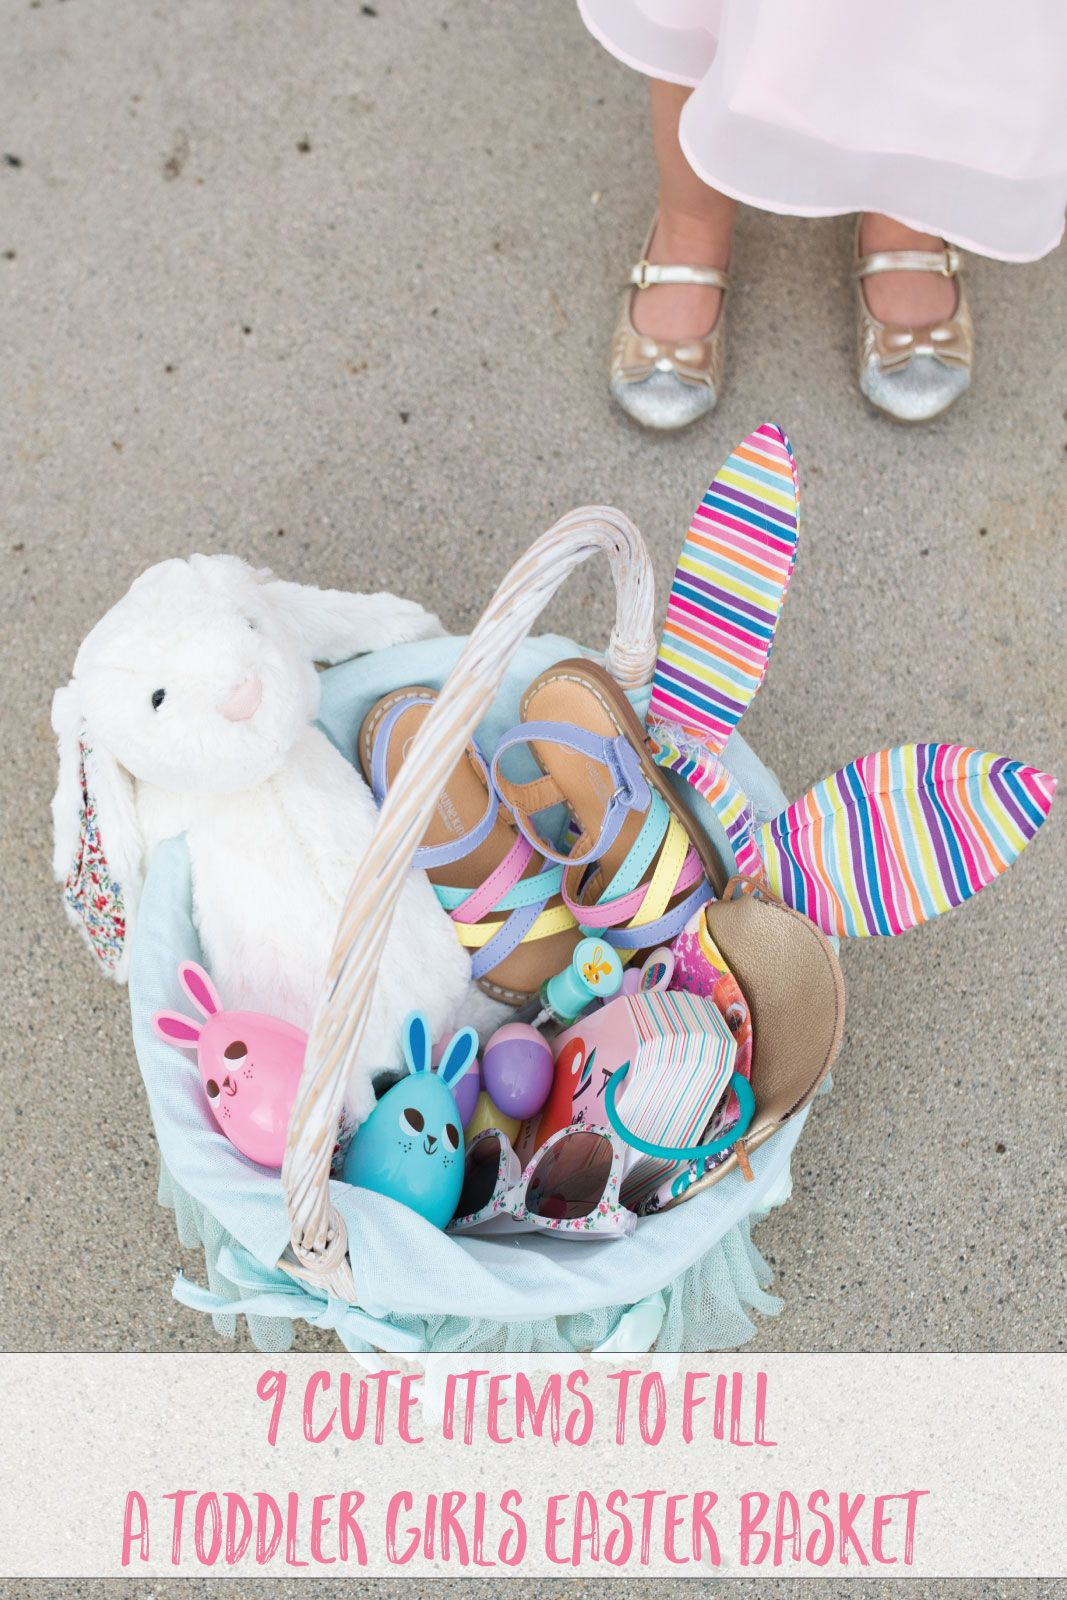 9 ideas for toddler girls easter basket easter baskets la mode 9 cute items to fill your toddler girls easter basket by lifestyle blogger sandy a la mode negle Images